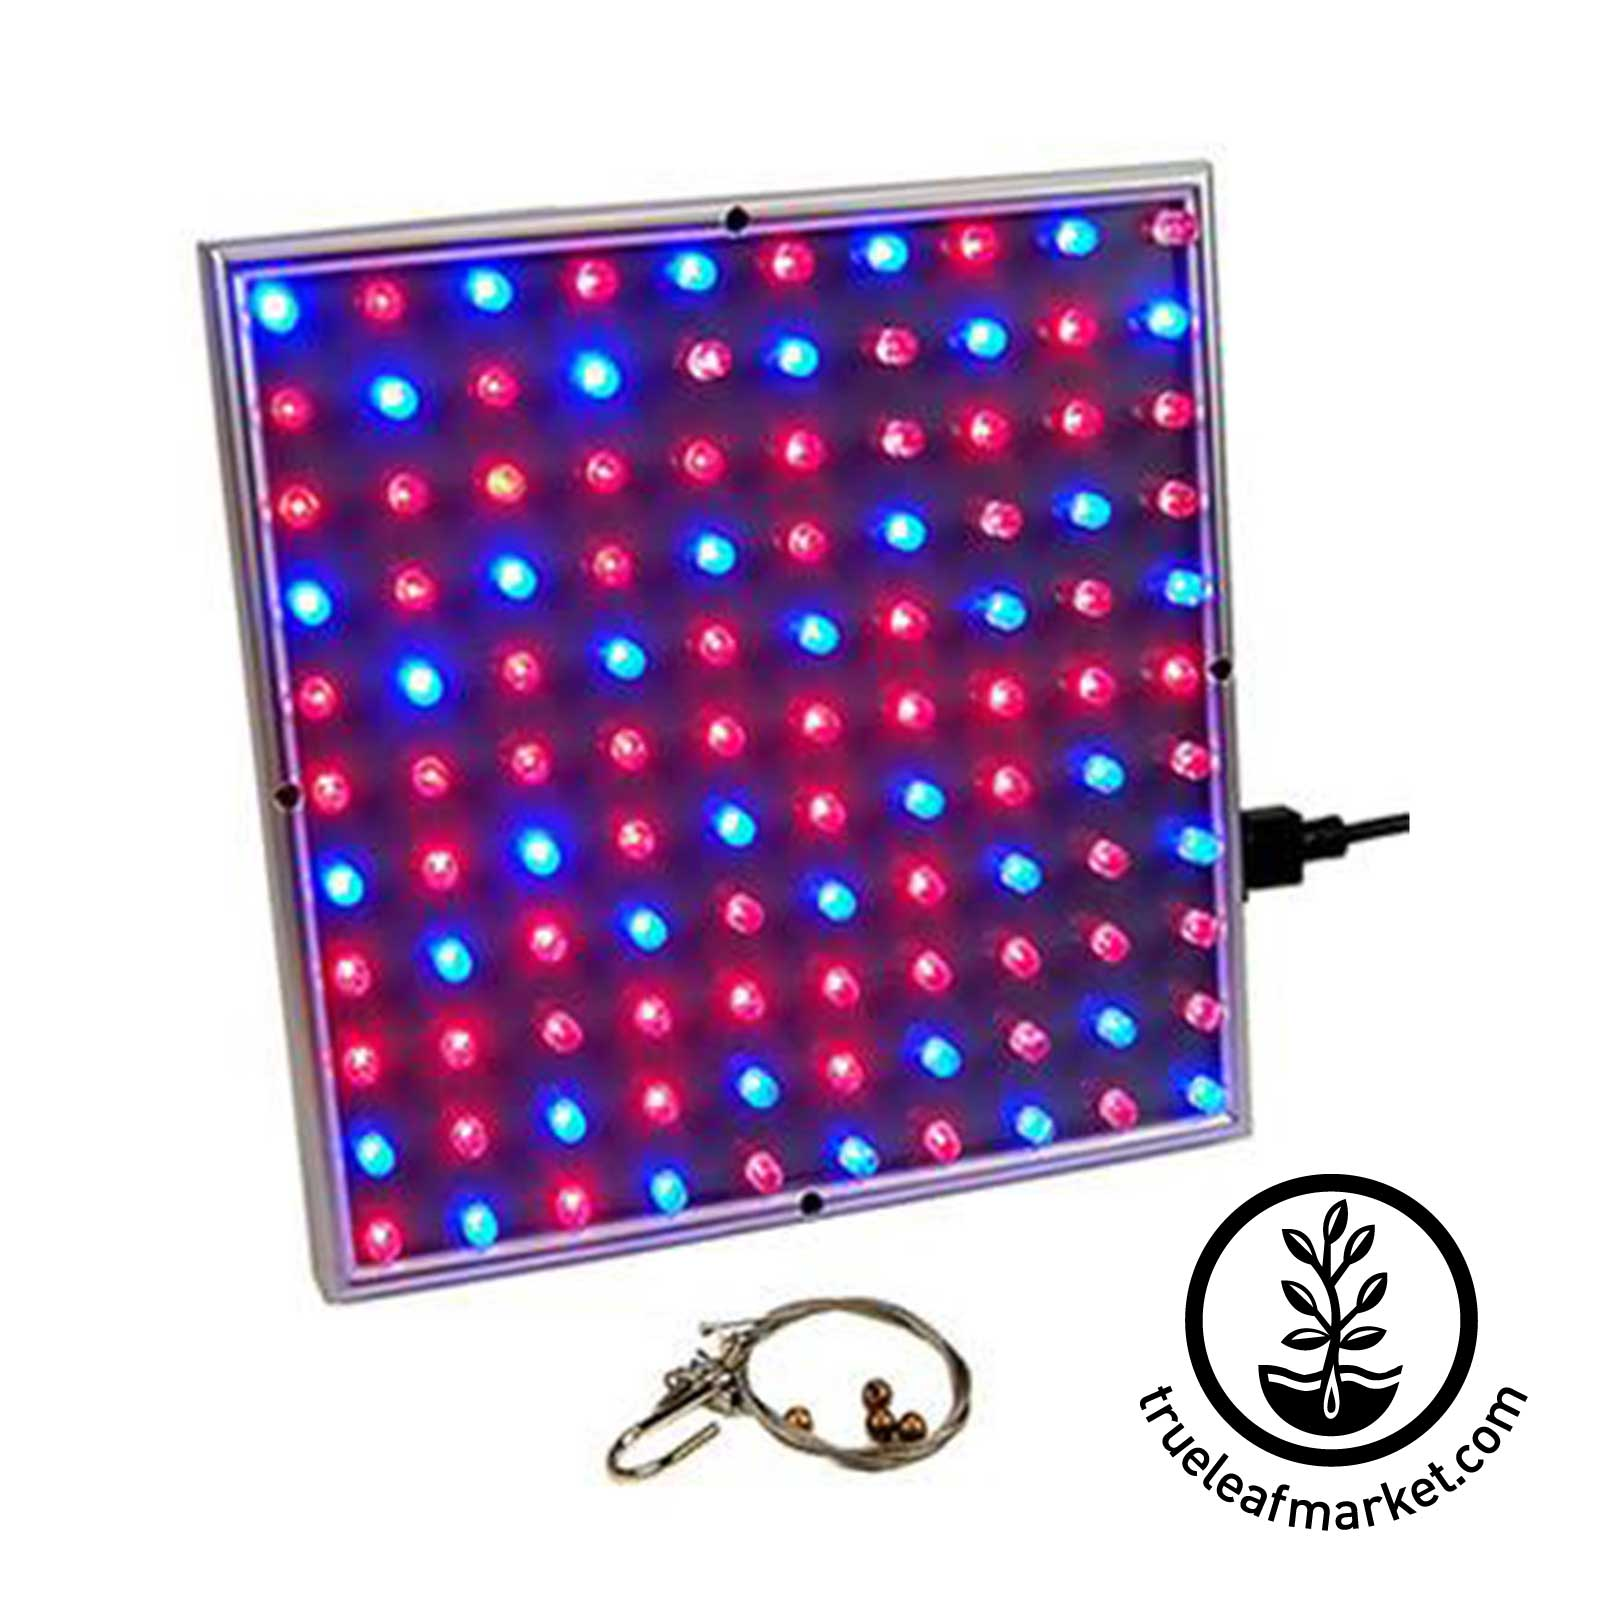 Micro Glow 50 Watt LED Grow Light